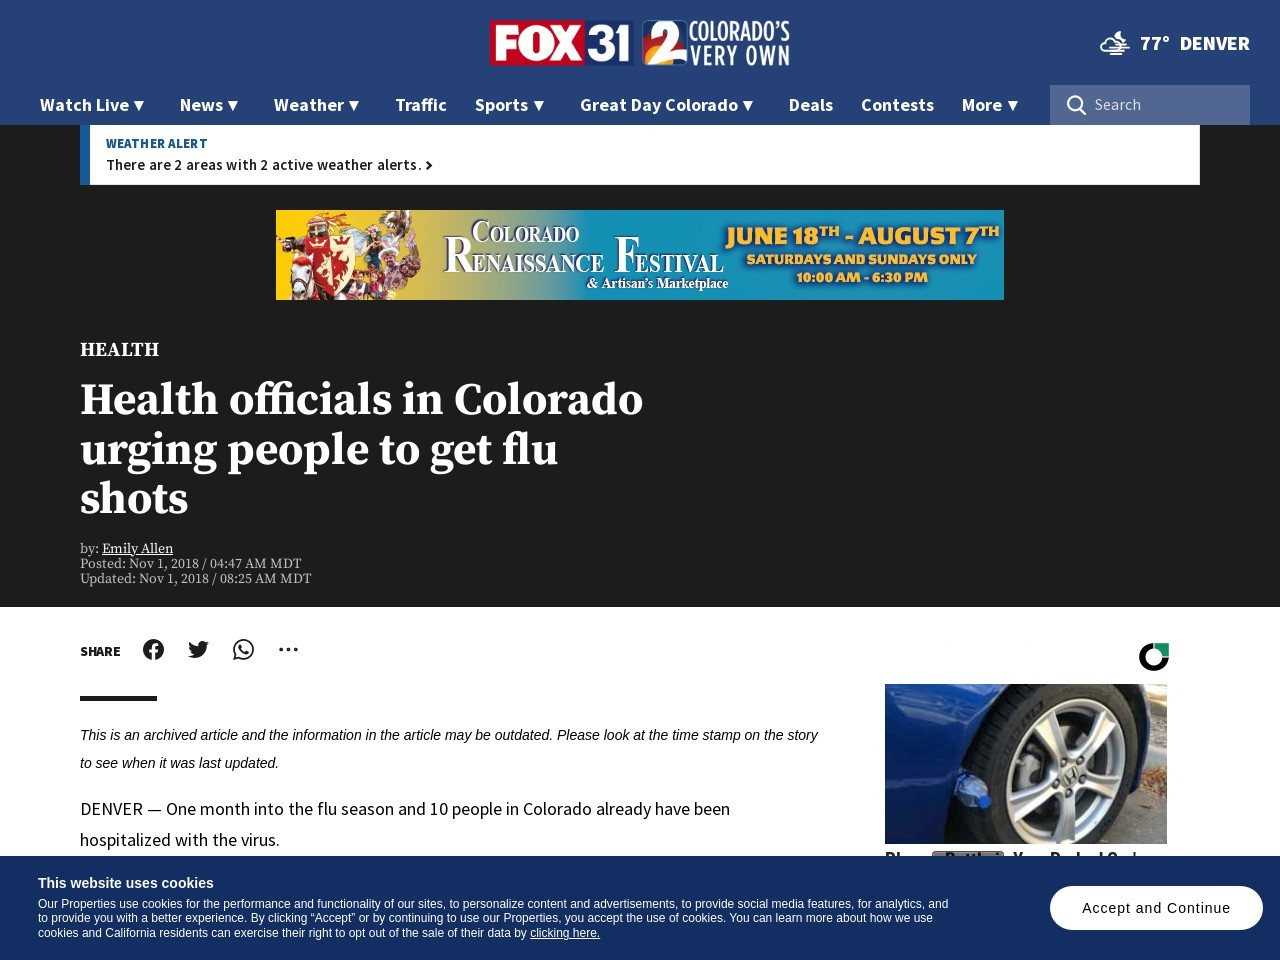 Health officials in Colorado urging people to get flu shots